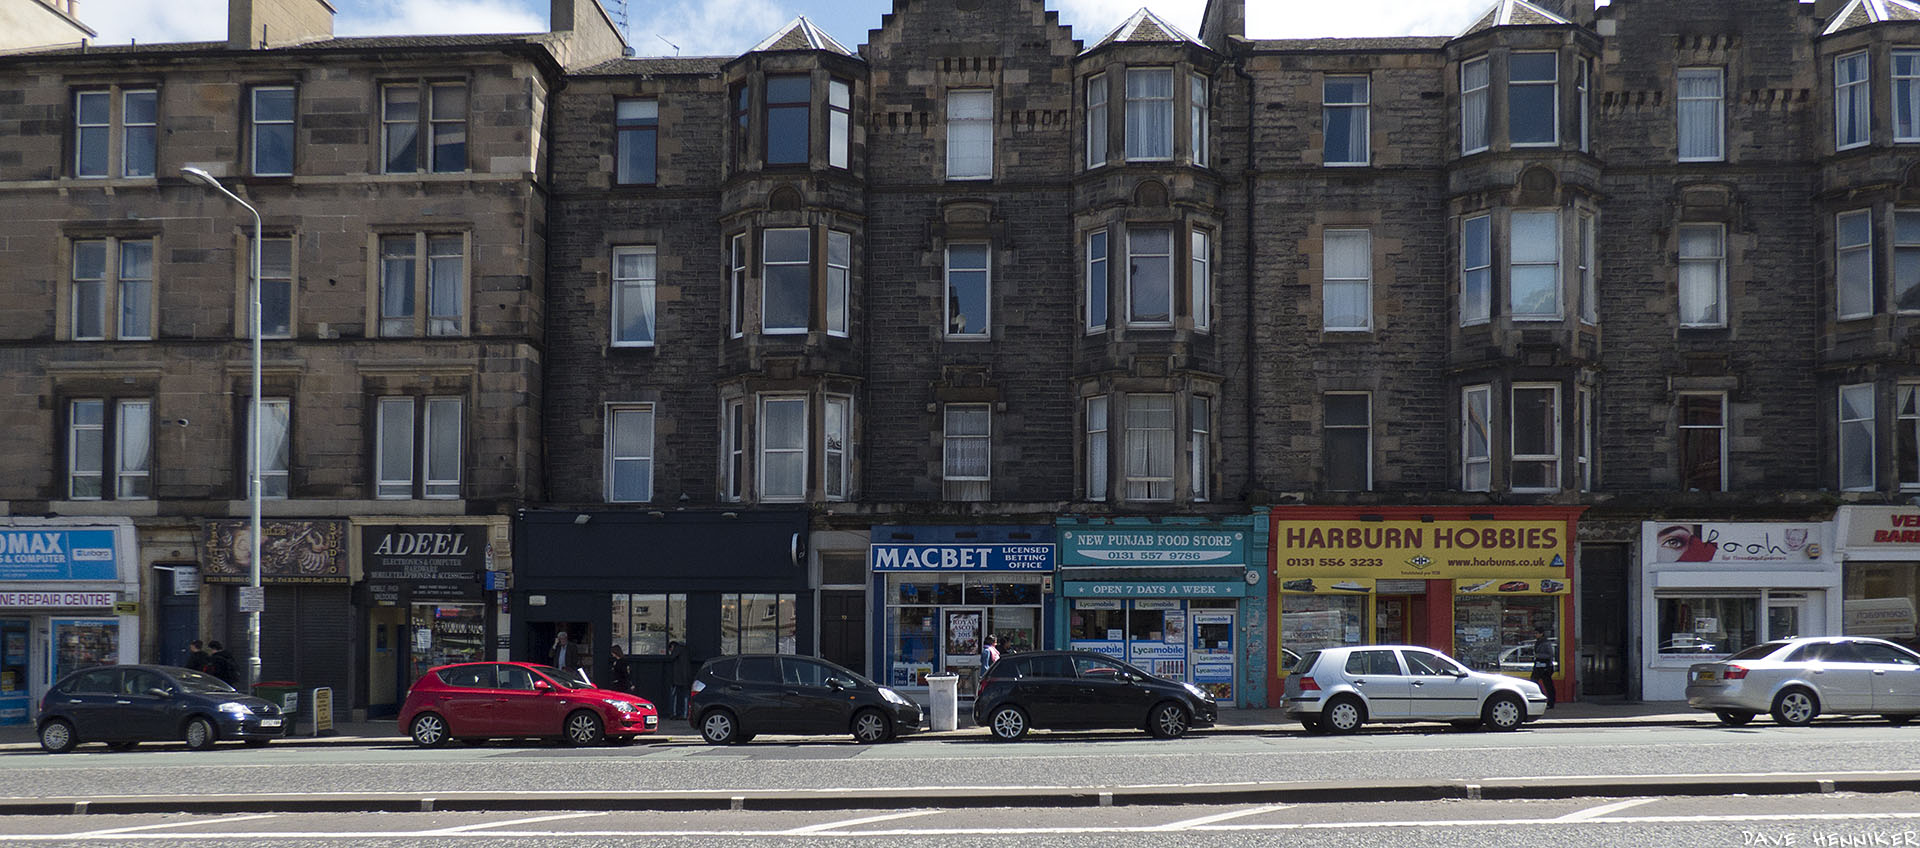 Harburn Hobbies has lasted longer than other shops hereabouts.